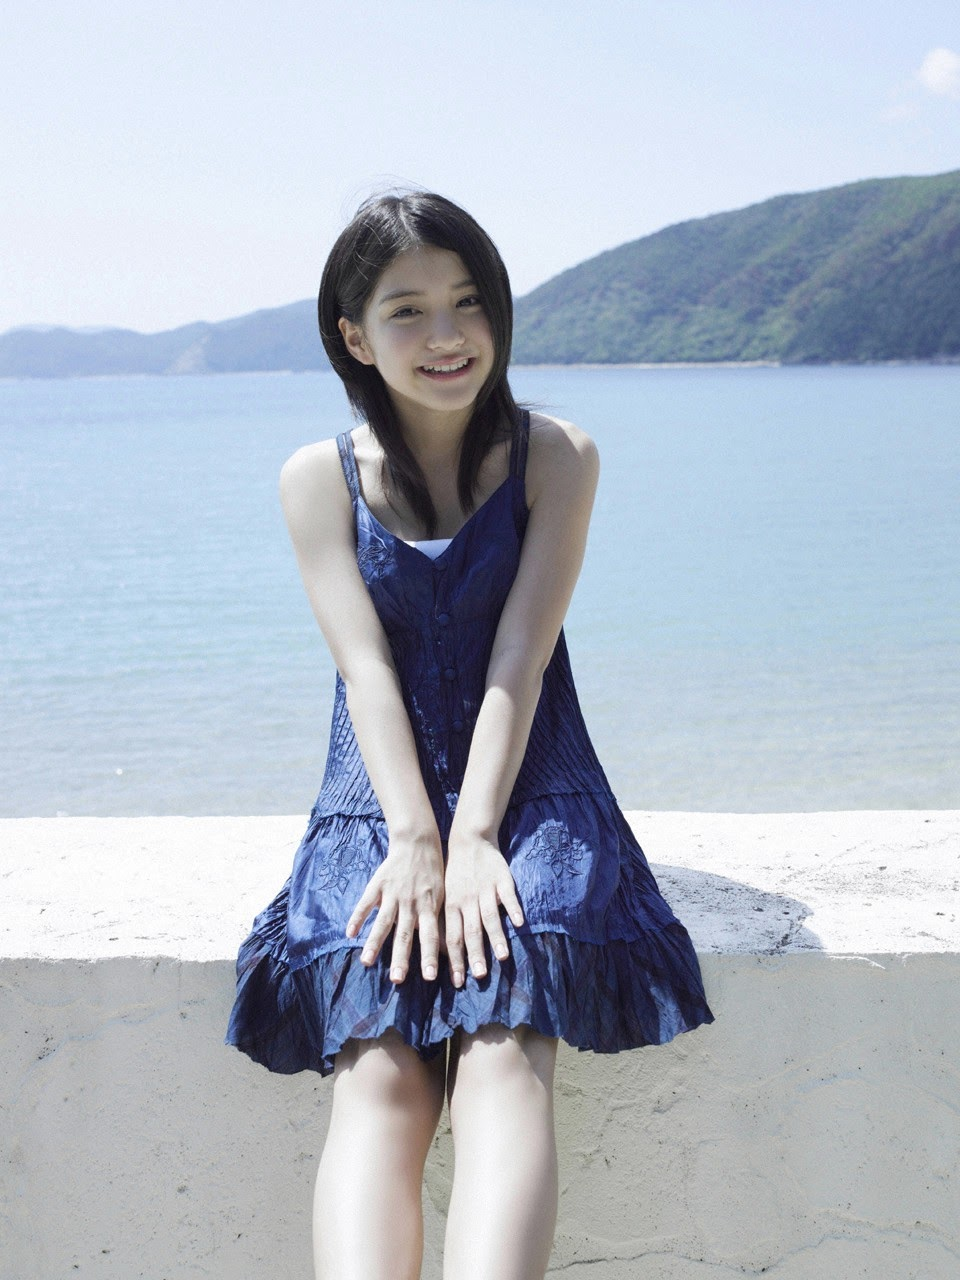 Umi chans smile explodes on some southern island160